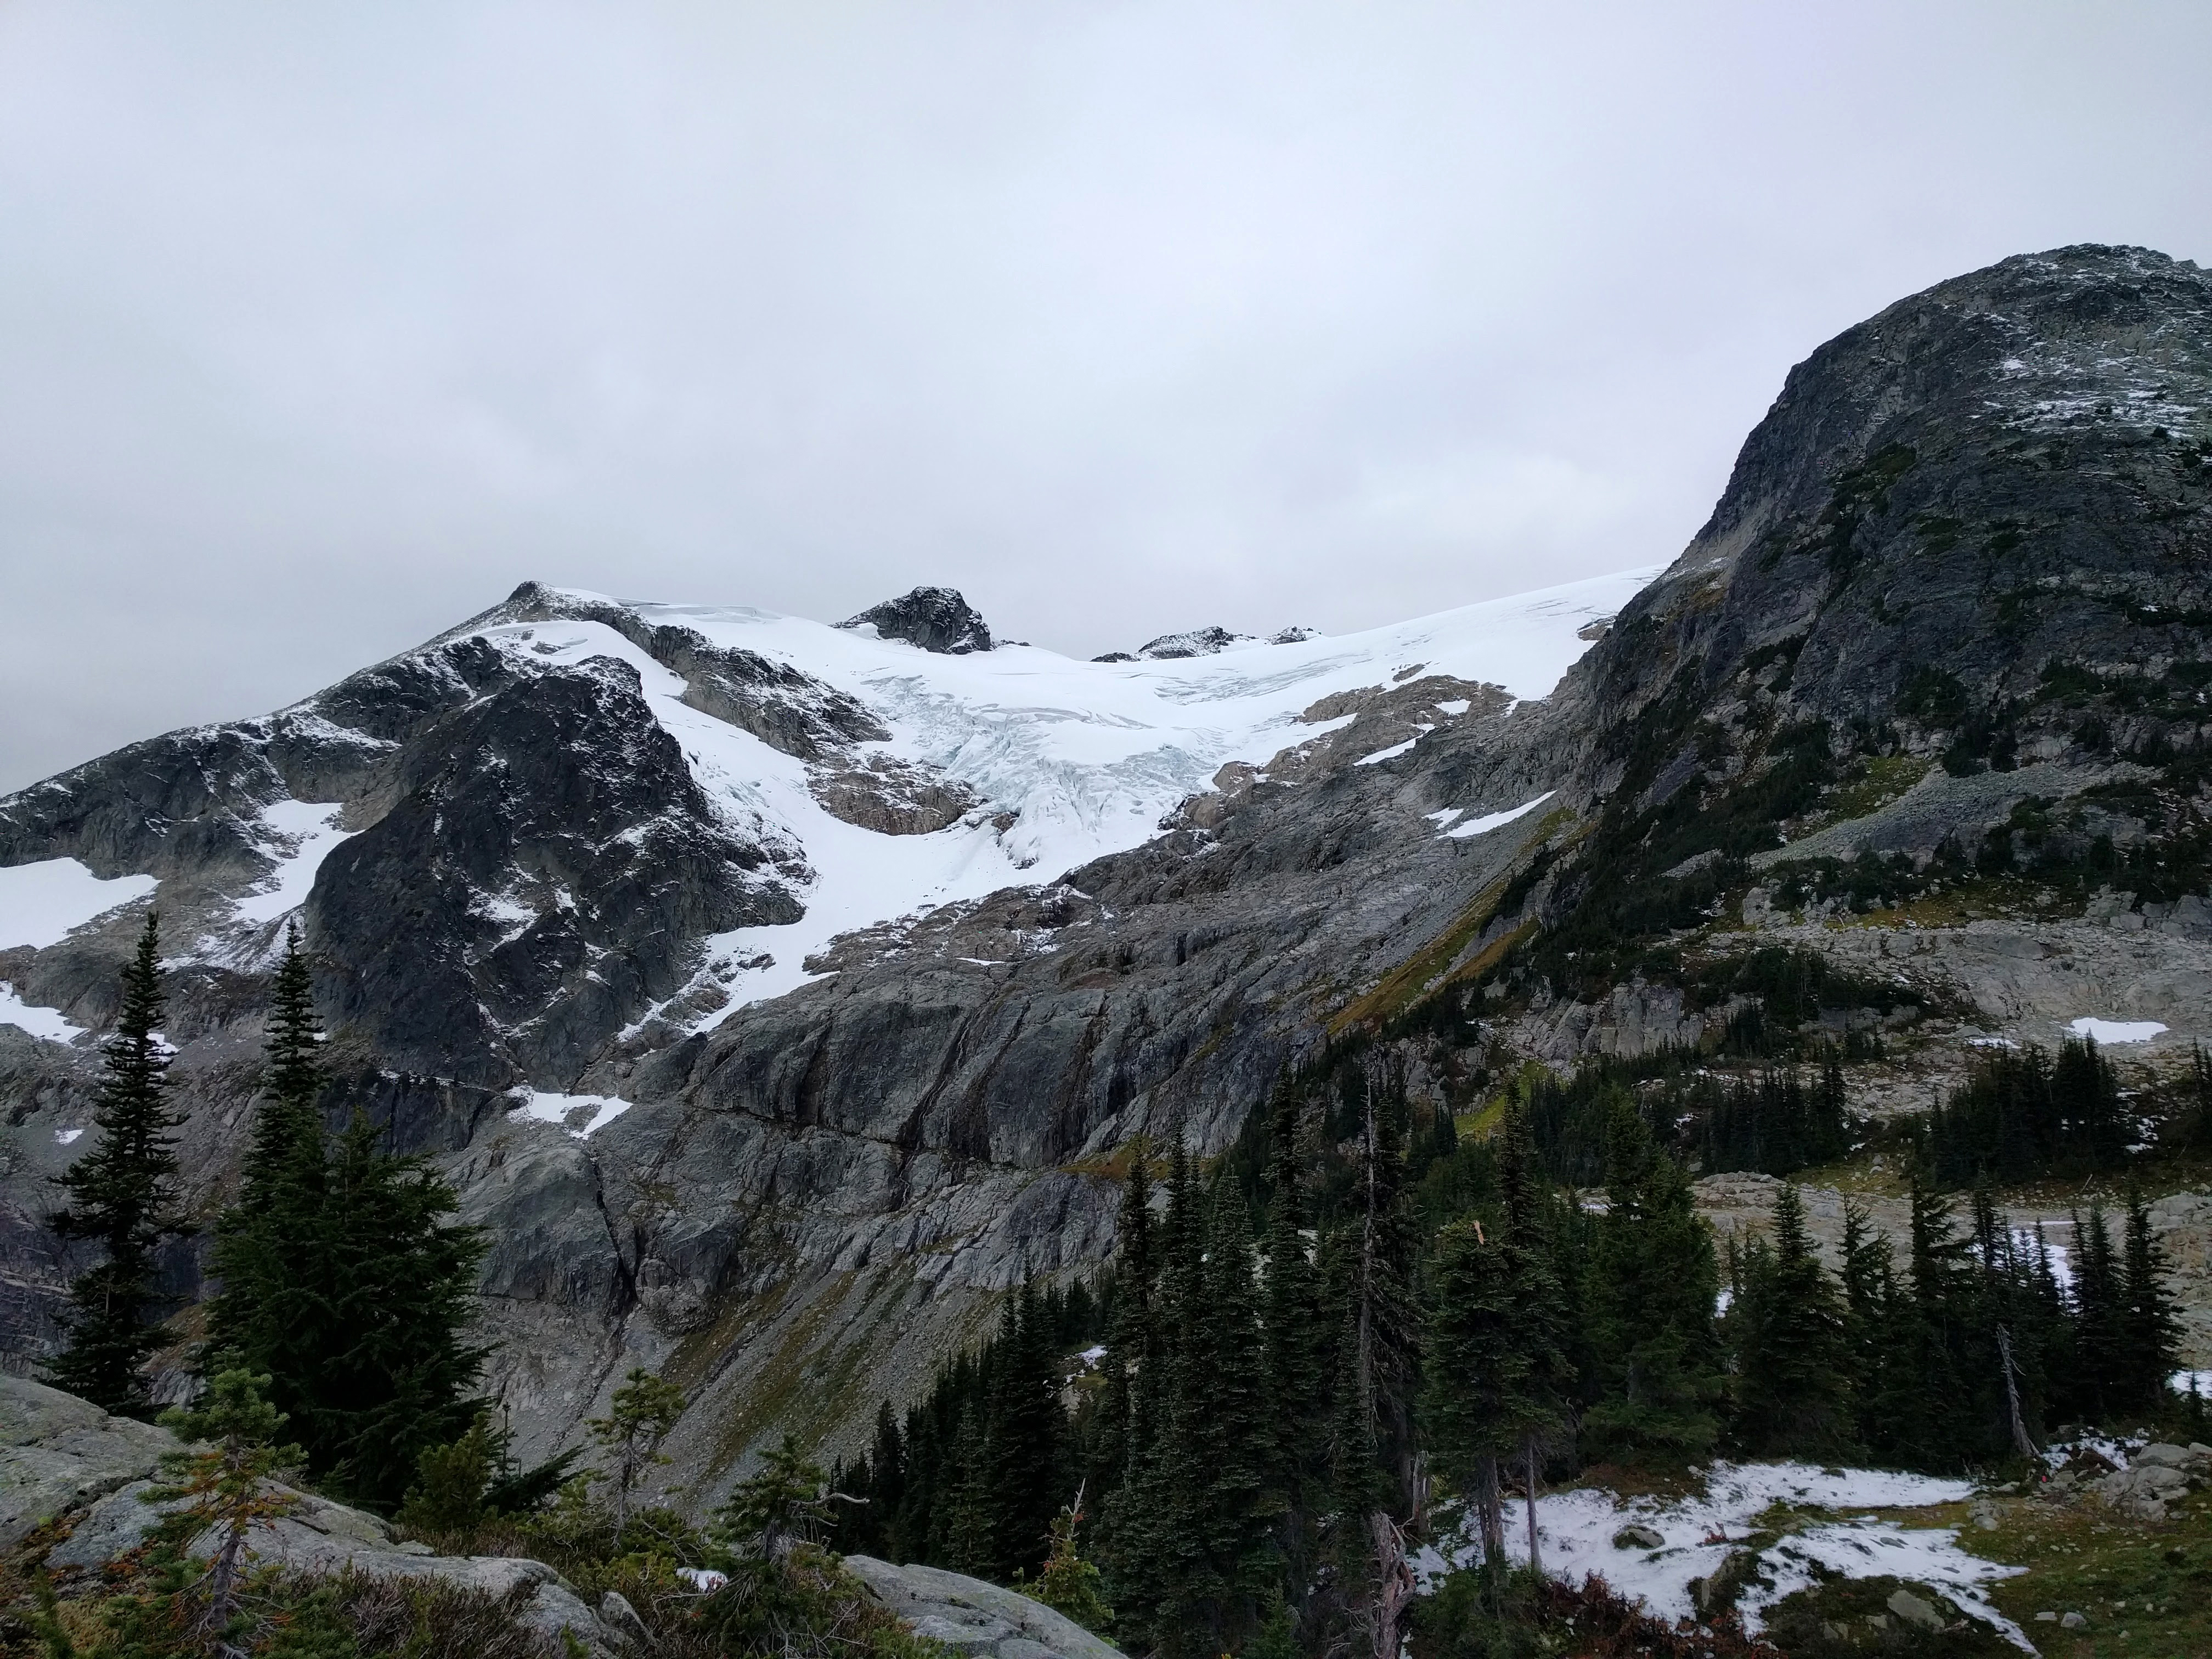 The Whistler ultramarathon takes runners up into the glaciers, among other ecological zones.